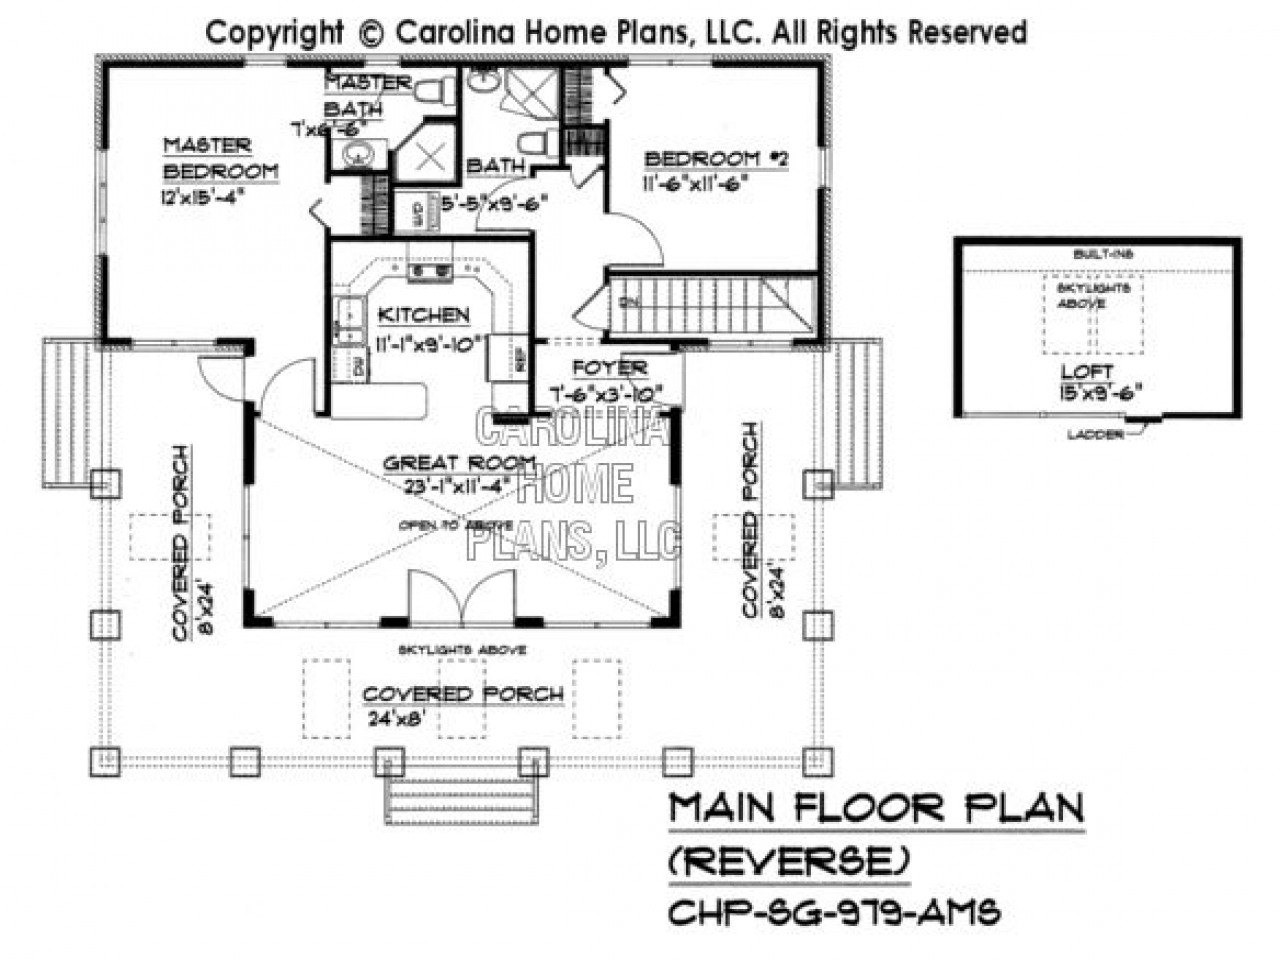 Small house plans under 1000 sq ft small two bedroom house for Small house floor plans under 1000 sq ft